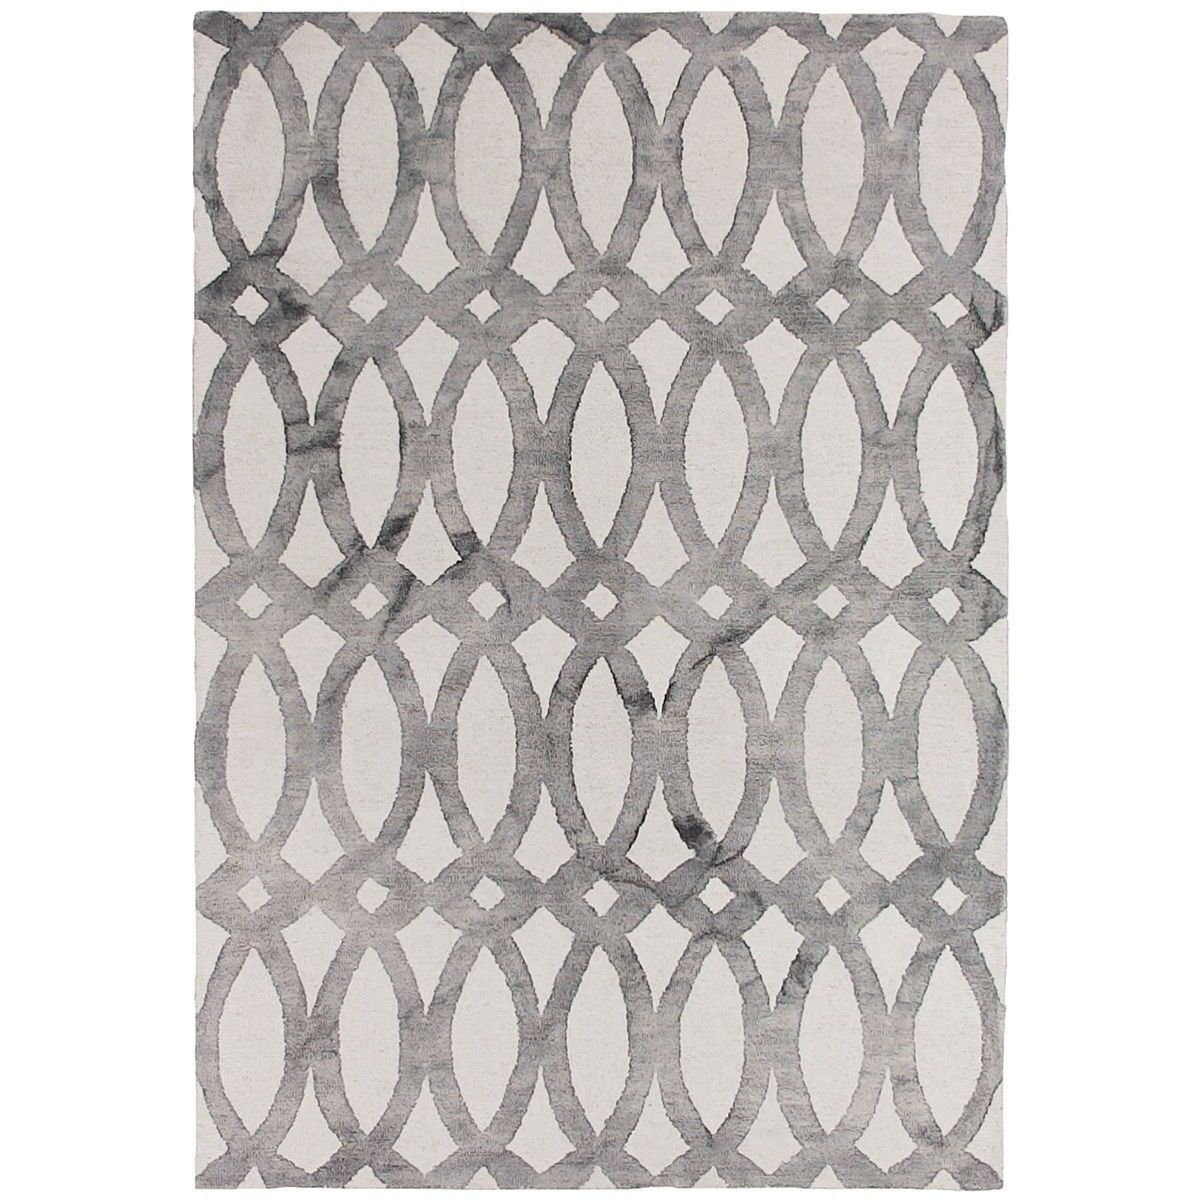 Dip Dye Hand Tufted Wool Rug, 300x400cm, Grey